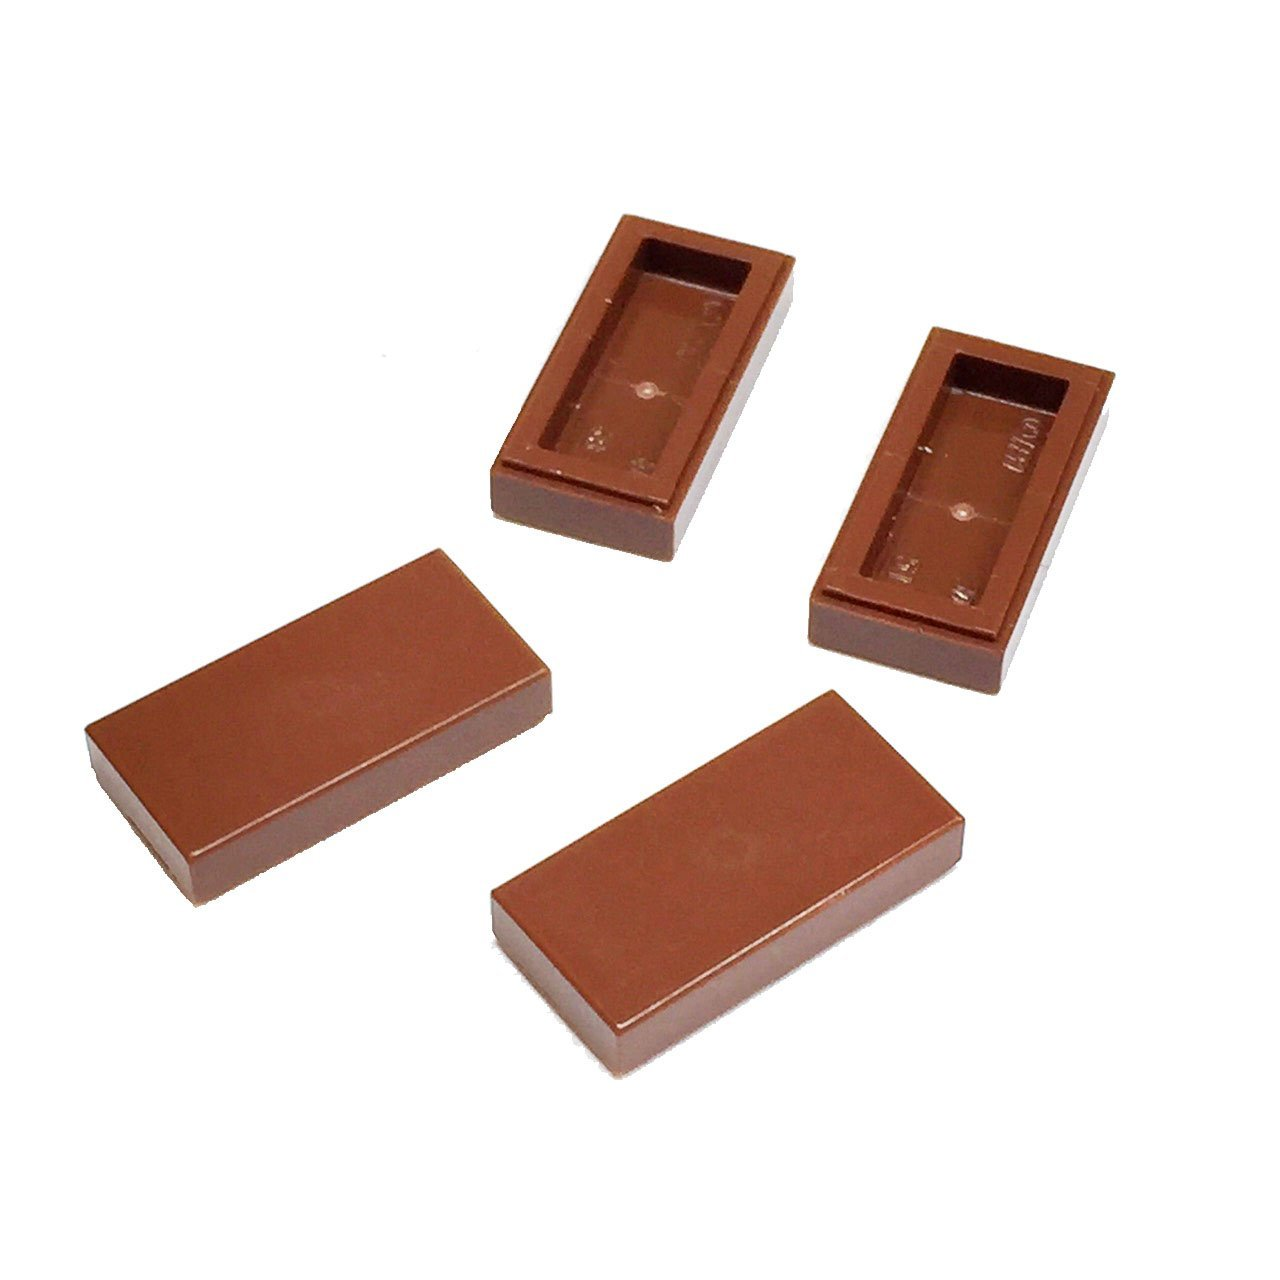 Lego Parts: Tile 1 x 2 with Groove (Service Pack of 4 - Reddish Brown)